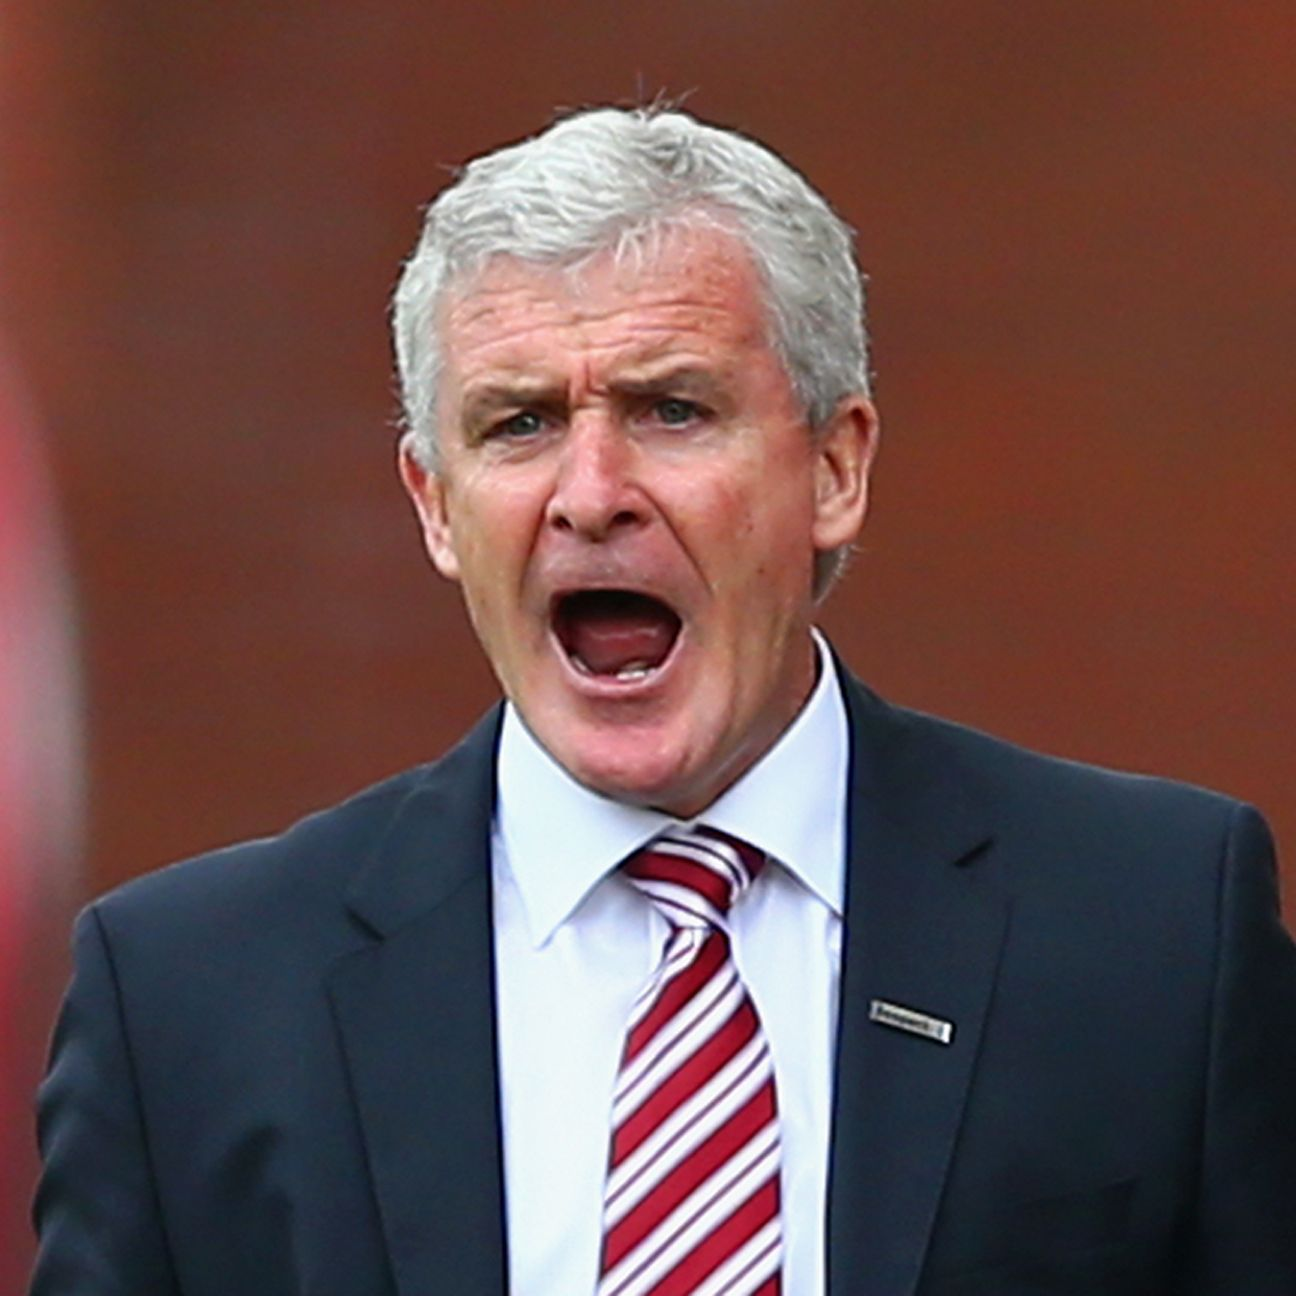 Just days after falling at Old Trafford, another strong test awaits Mark Hughes' Stoke side as they face Arsenal this weekend.